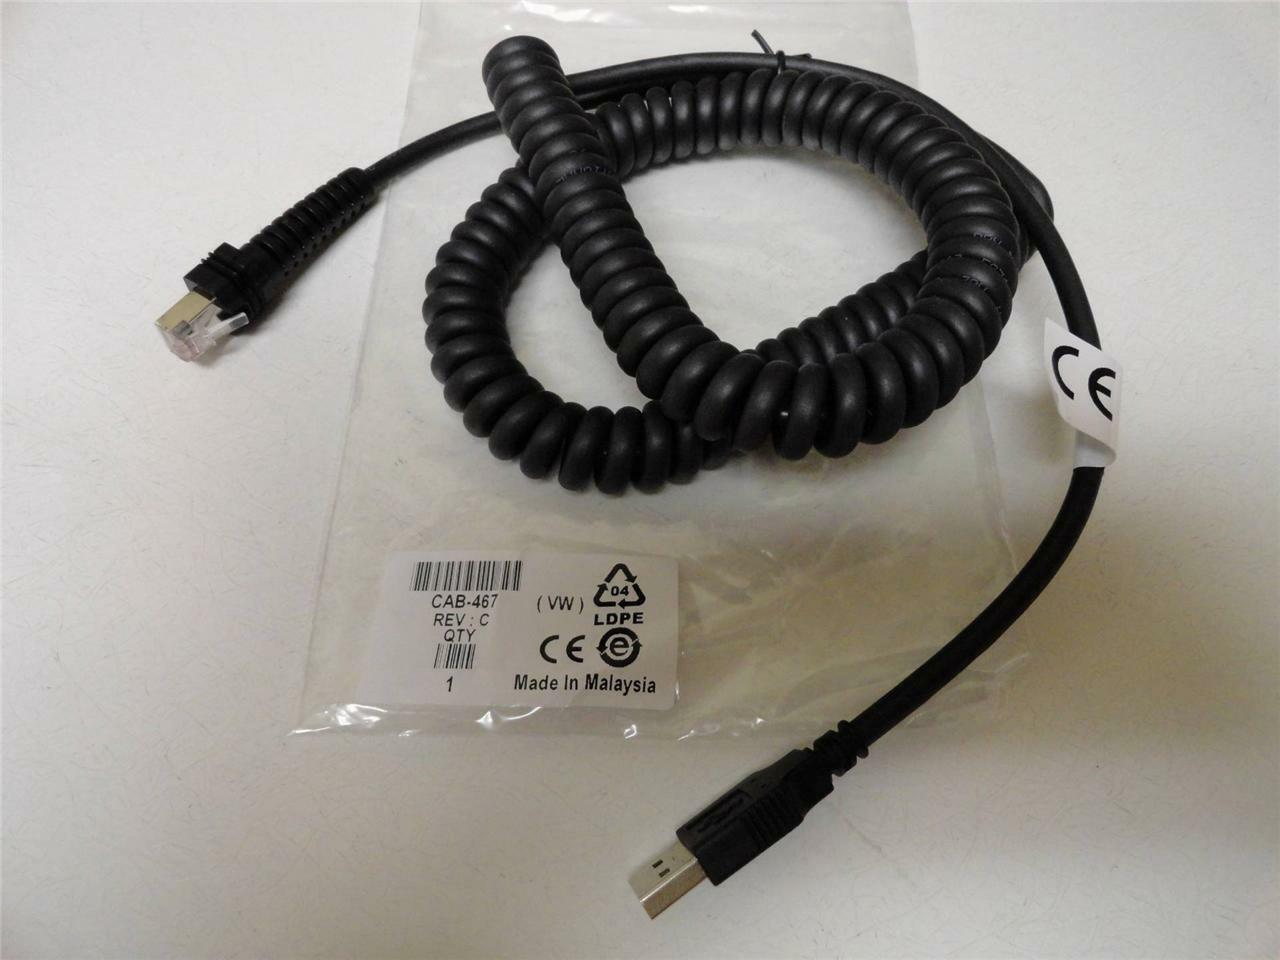 USB Datalogic Cable